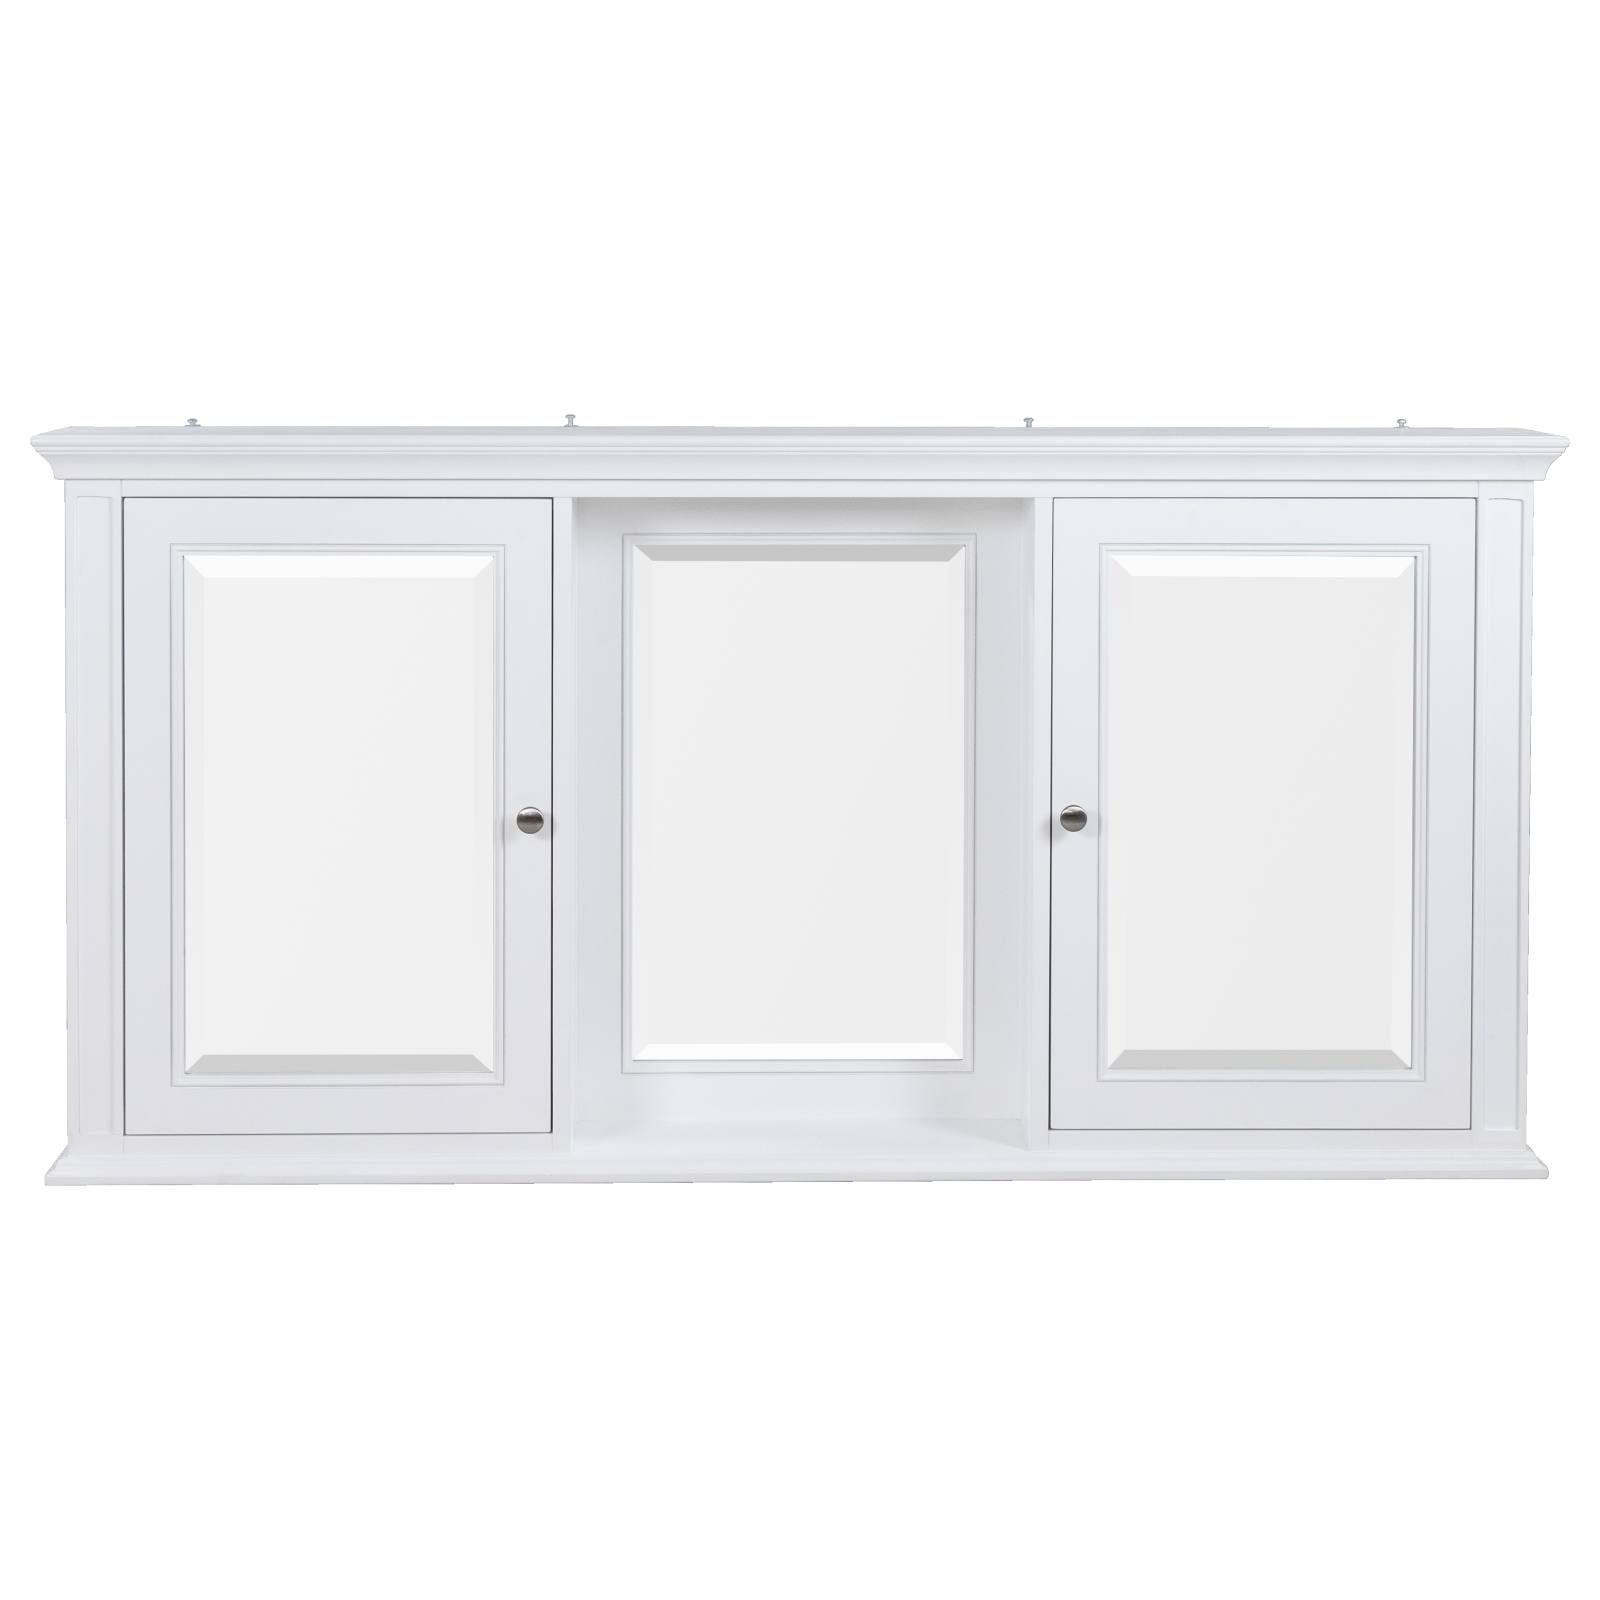 Sherbrooke Mirror Cabinet 3 Mirror 2 Doors White Mirror Cabinets Bathroom Medicine Cabinet Mirror Big Bathrooms